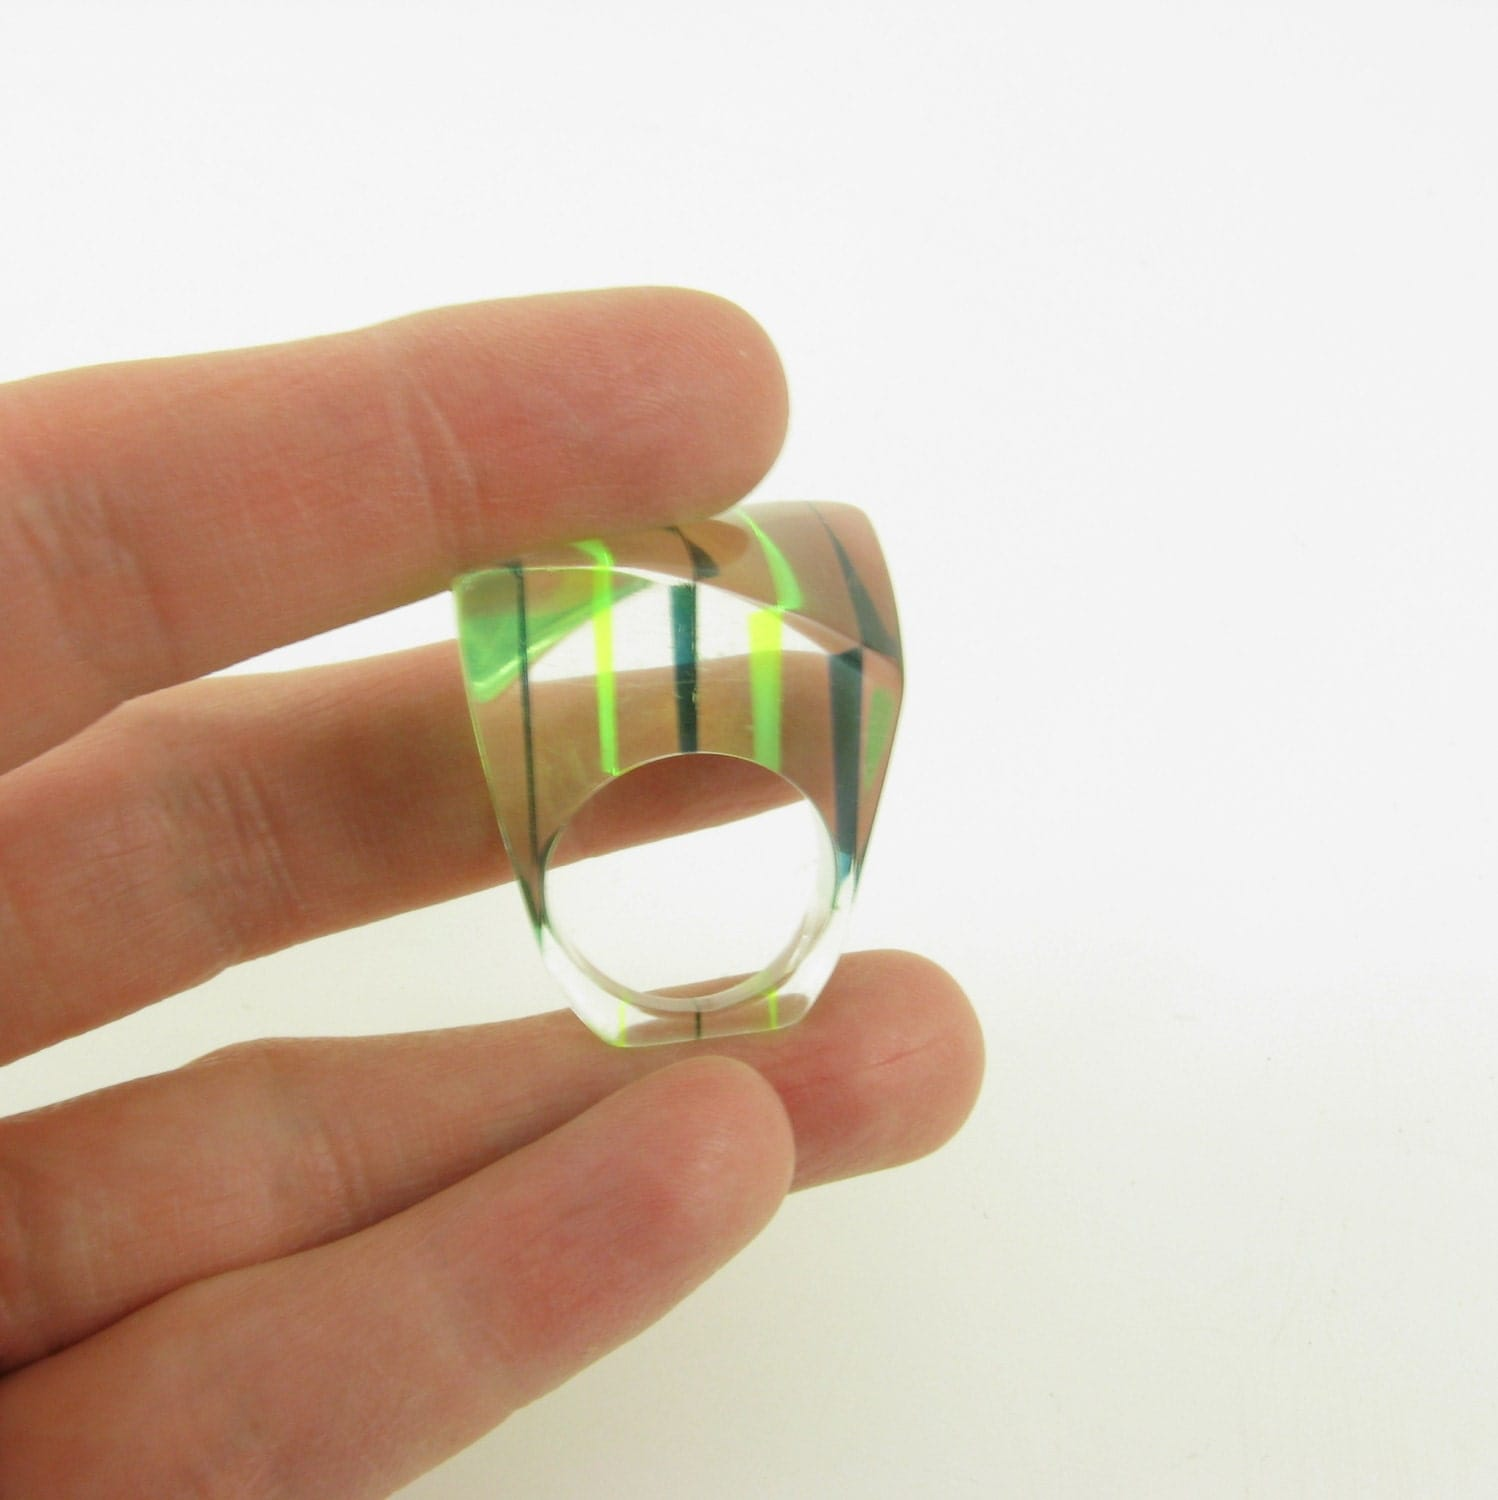 Vintage 1960s Mod Geometric Lucite Ring w/ Green Stripes - 7 7.5 - TwoMoxie